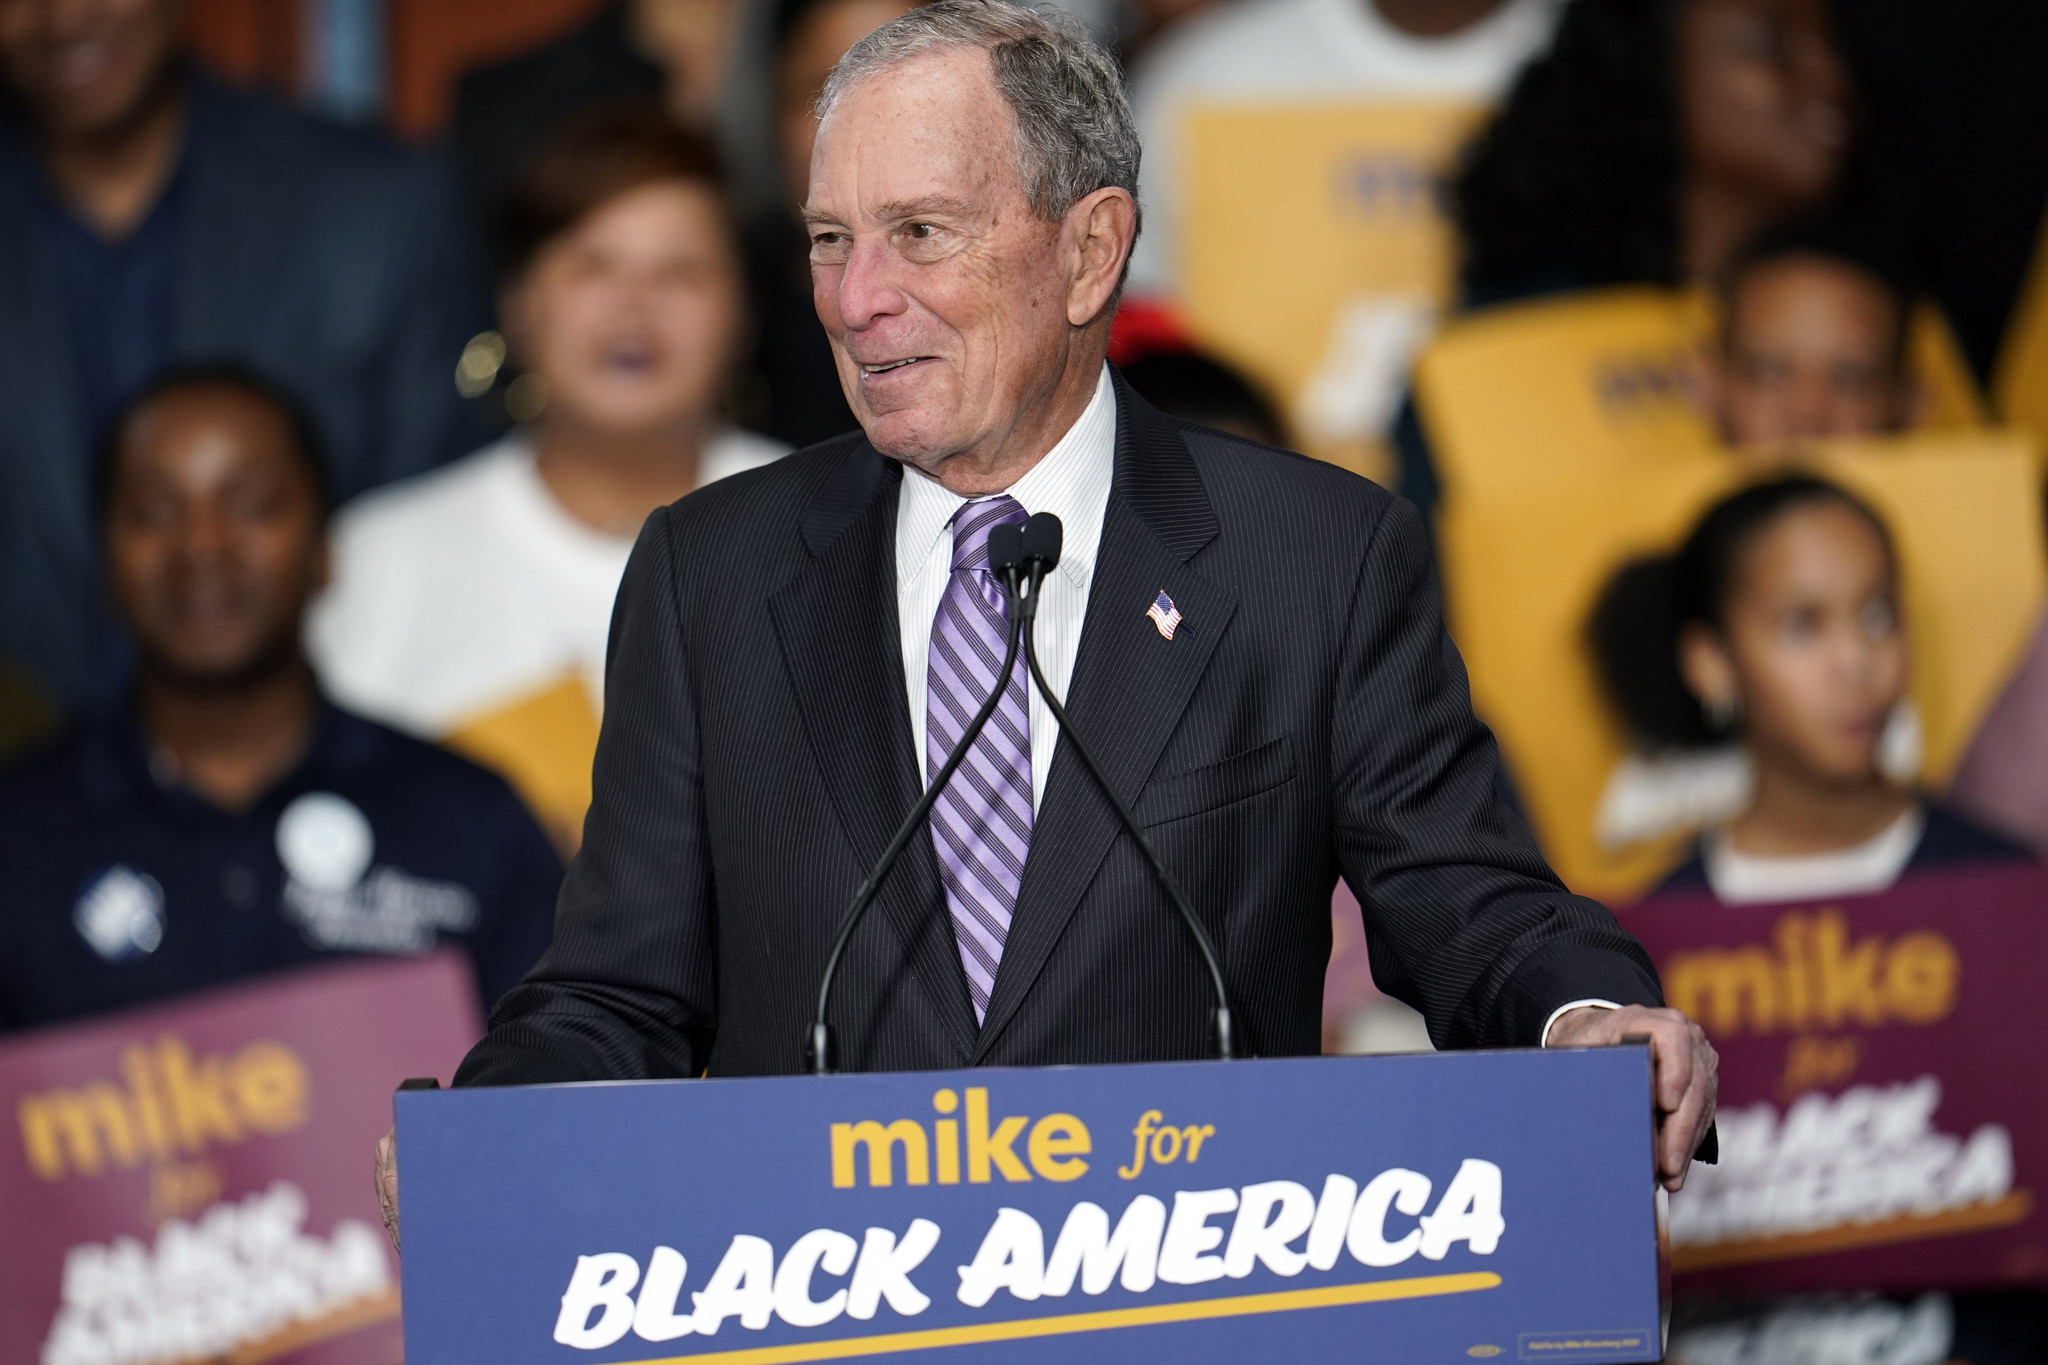 Bloomberg brings big bucks to bid in Super Tuesday states